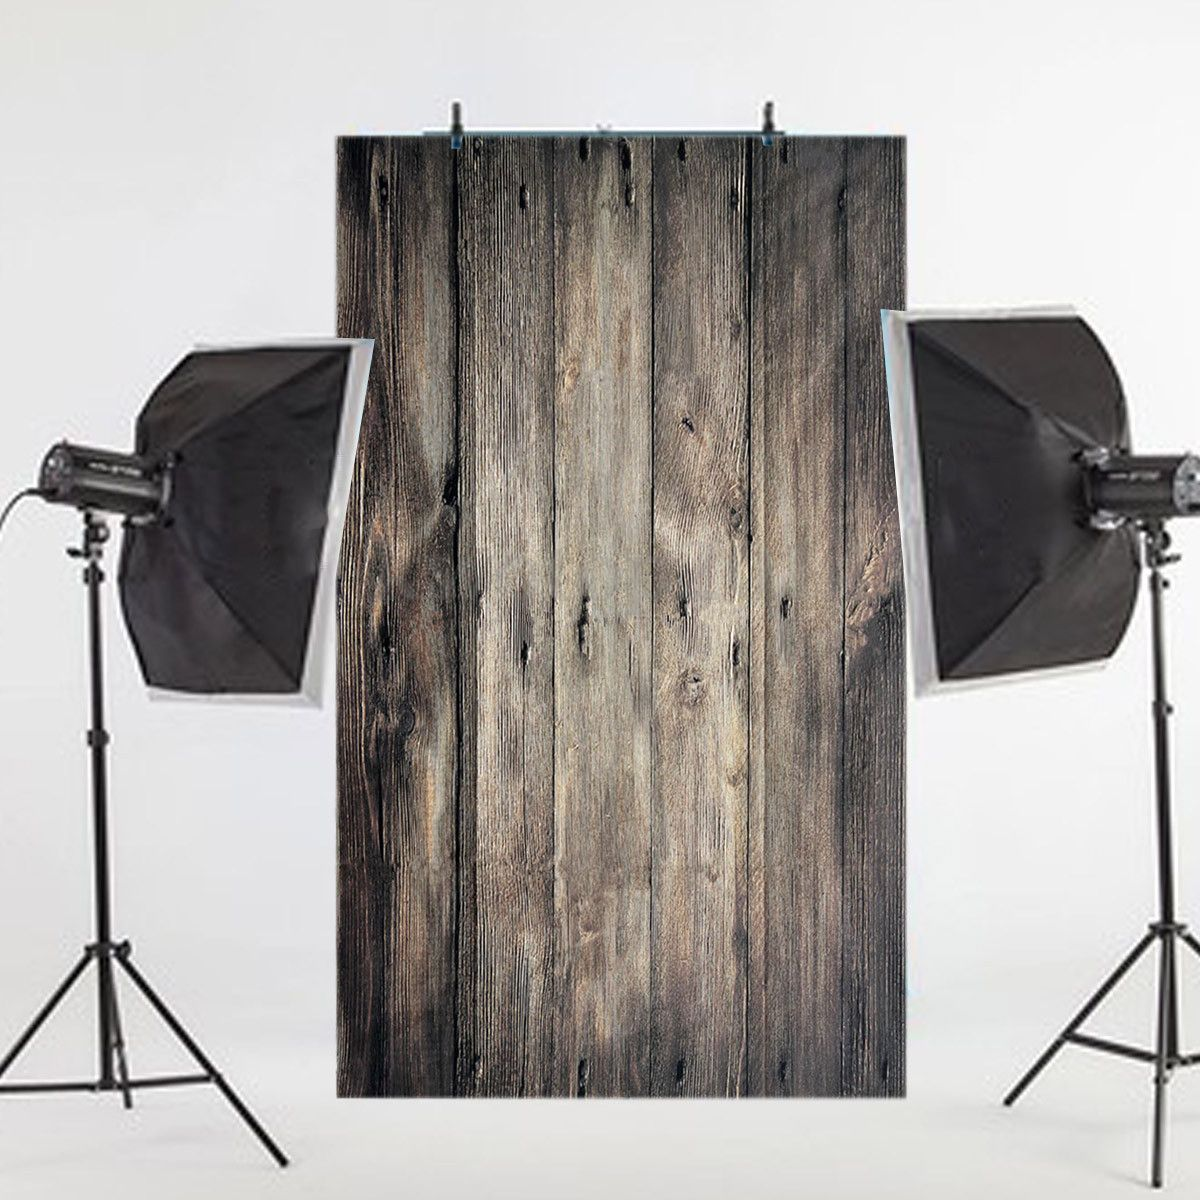 New 3x5FT Vintage Photography Backdrops Wood Vintage Photography Backdrop Backgrounds Studio Wood Background Fotografia huayi 10x20ft wood letter wall backdrop wood floor vinyl wedding photography backdrops photo props background woods xt 6396